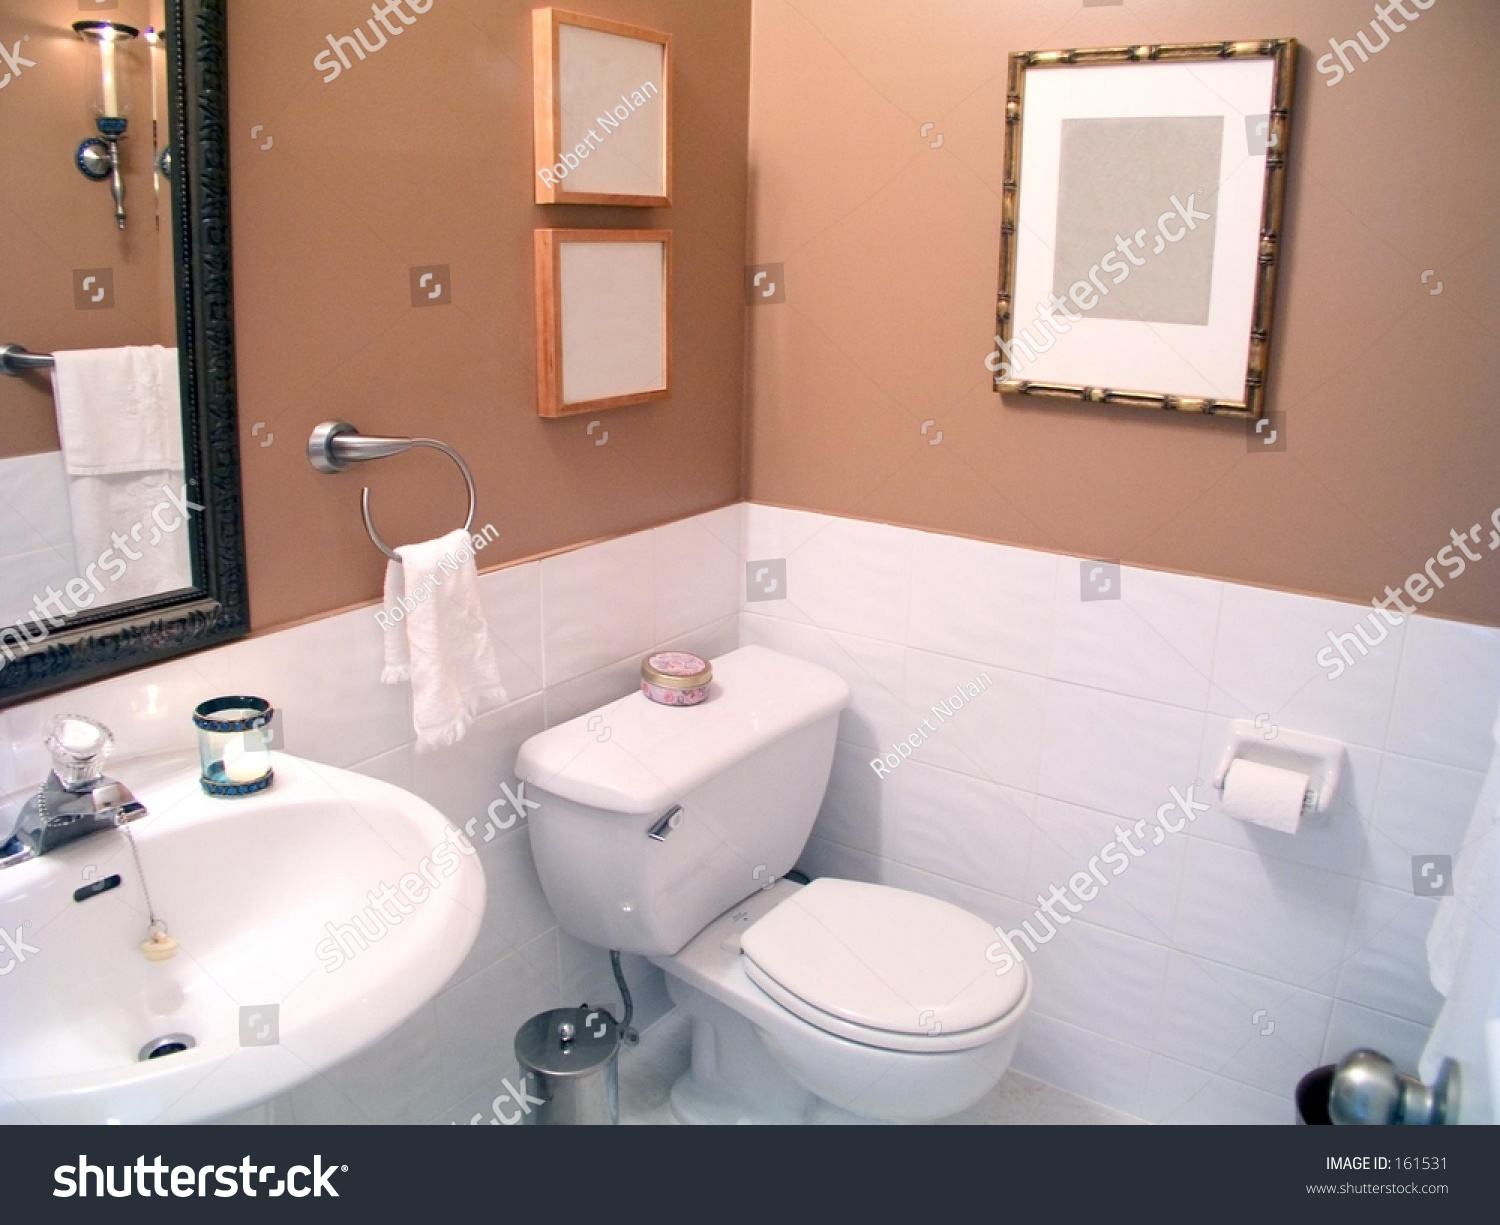 Bathroom With Mirror,White Porcelain Fixtures, Lower White